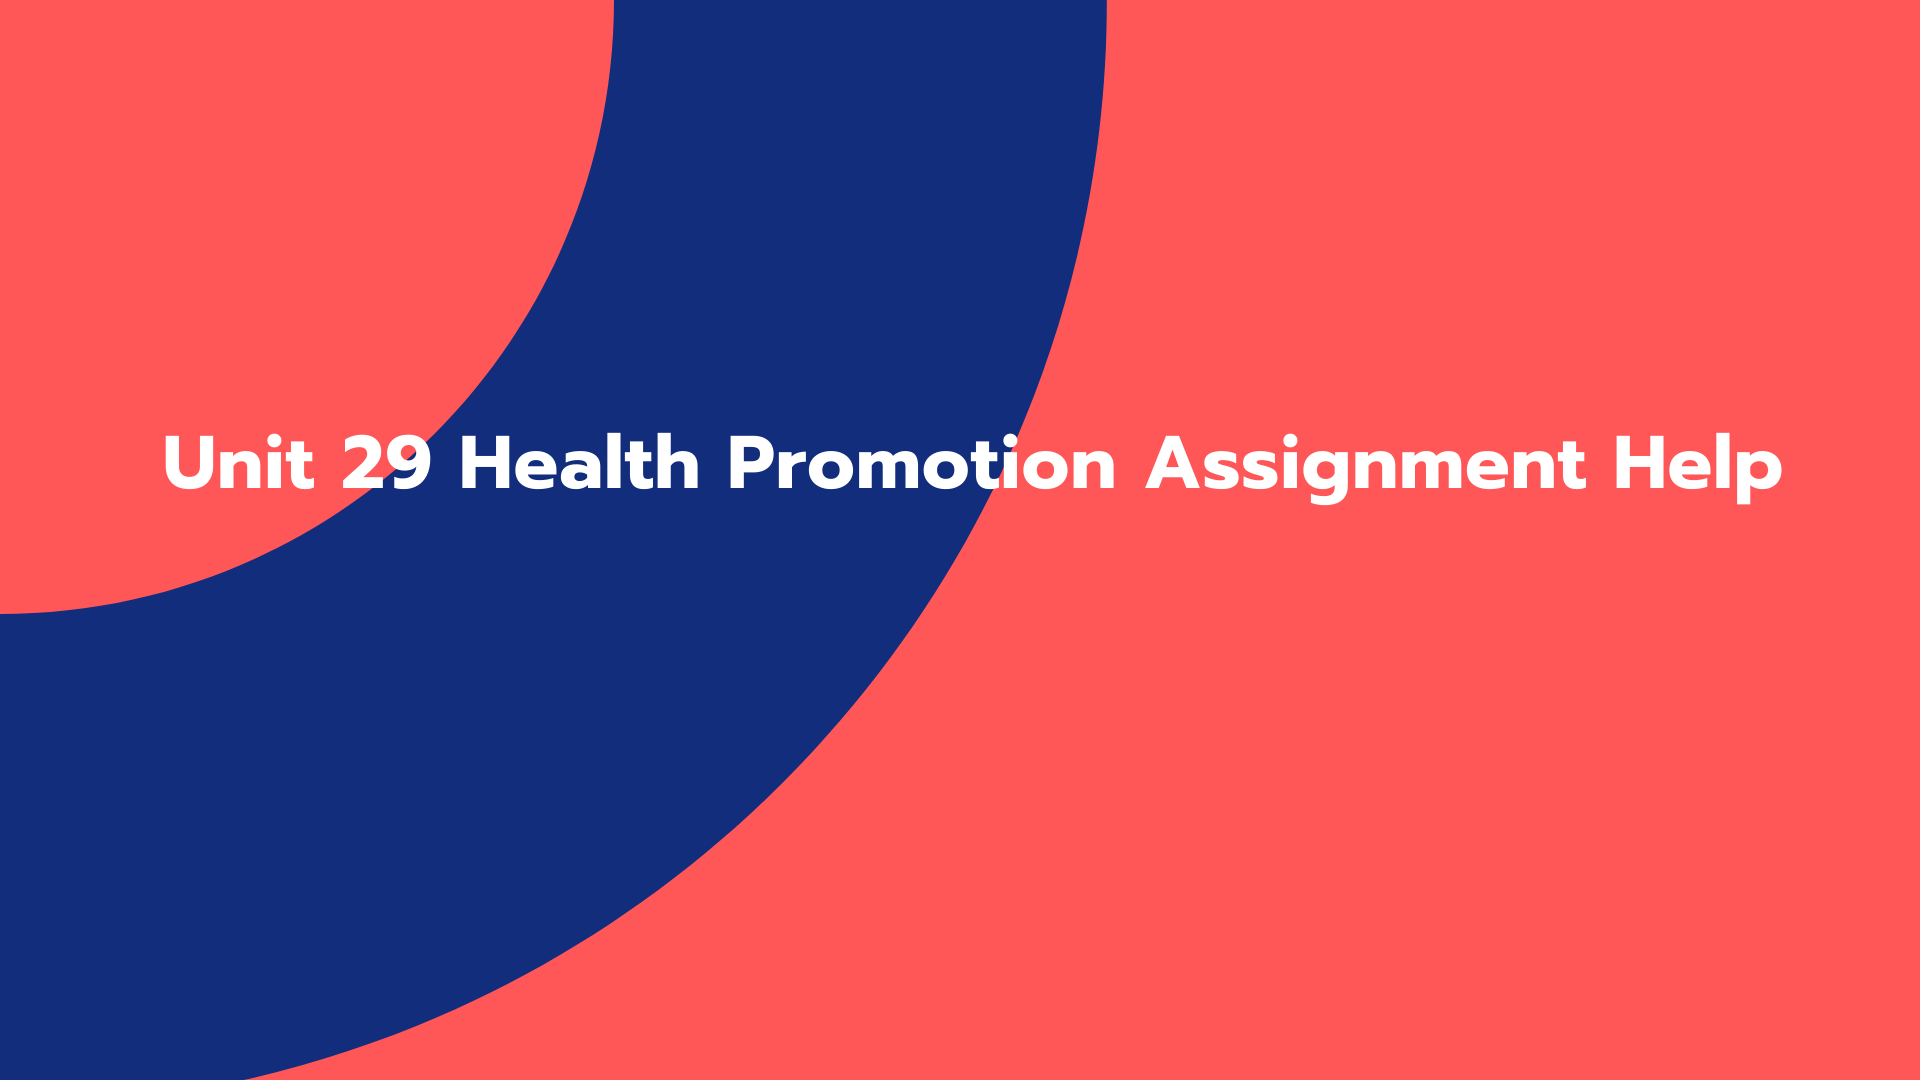 Unit 29 Health Promotion Assignment Help